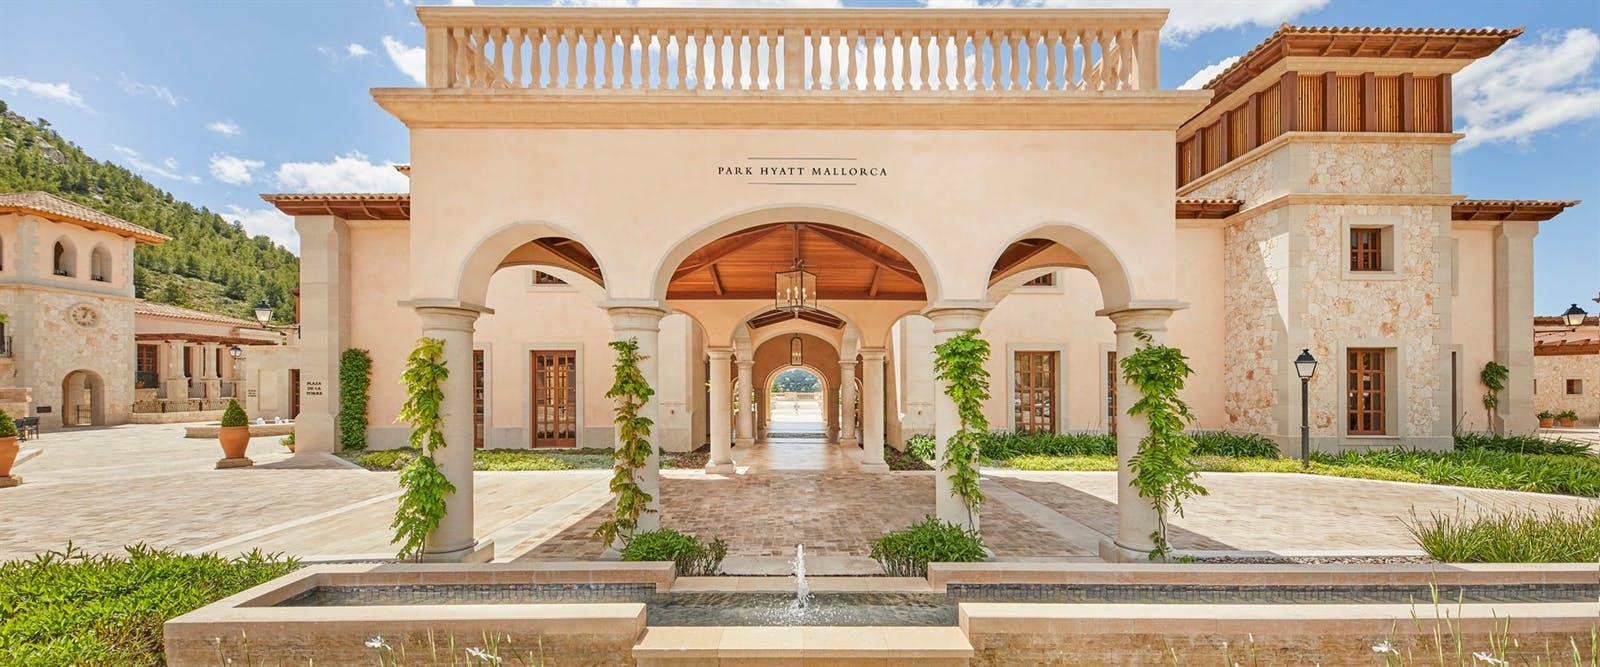 Main Entrance to Park Hyatt Mallorca, Spain